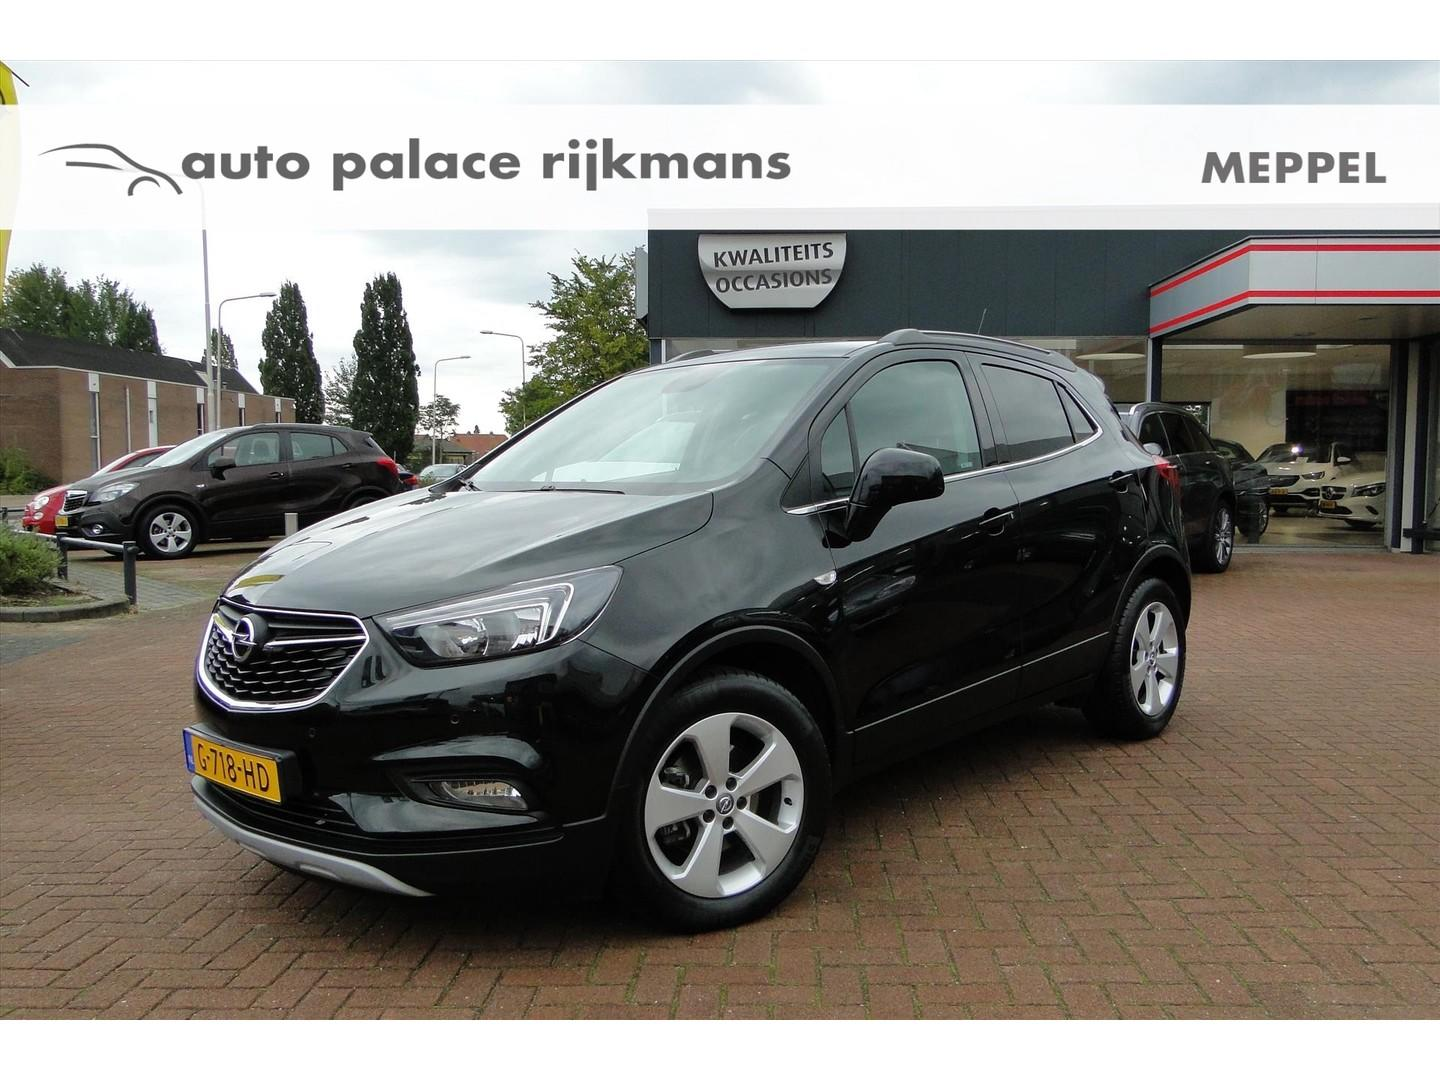 Opel Mokka x 1.4 turbo 140pk innovation navi/camera/leer/agr